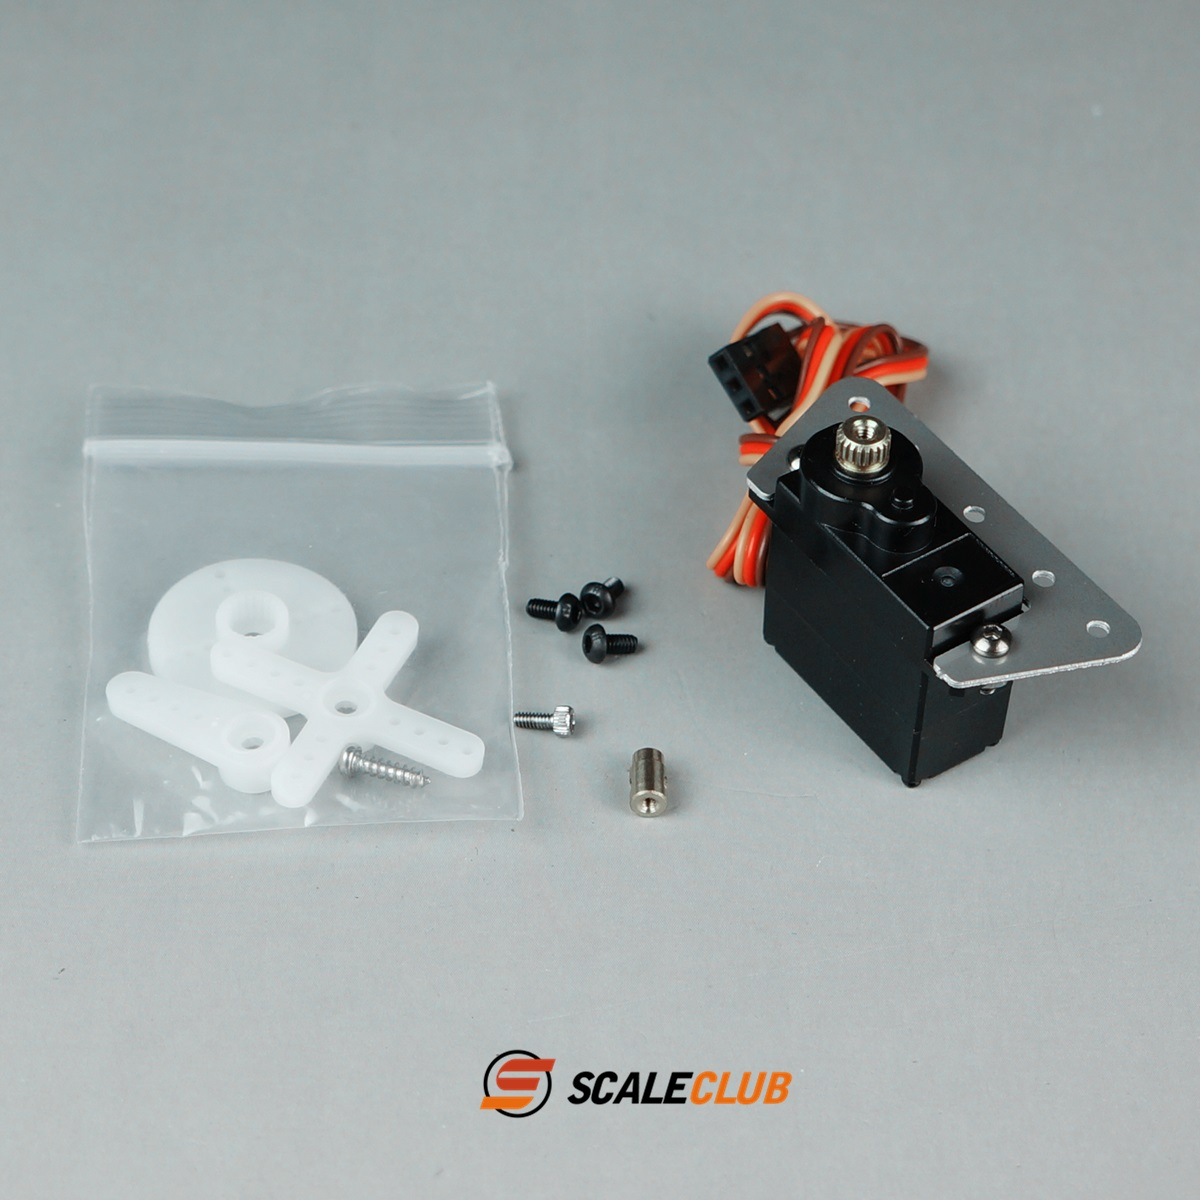 SCALECLUB  1/14 Universal  Lock difference steering gear with mounting bracket